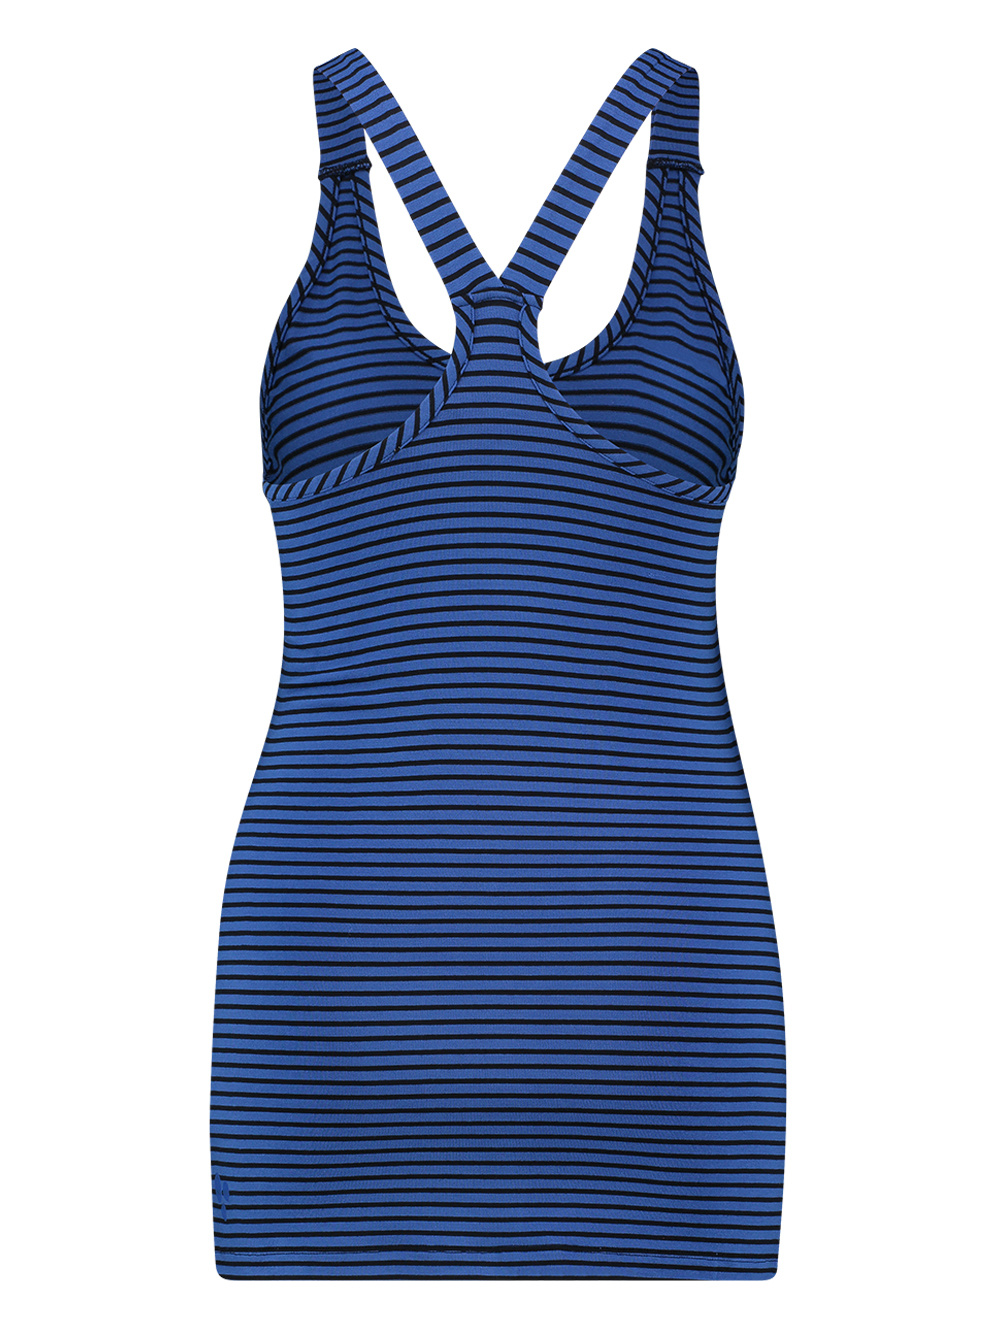 L.O.E.S. 20322 6669 Loes Willow stripe top brblue/dkblue